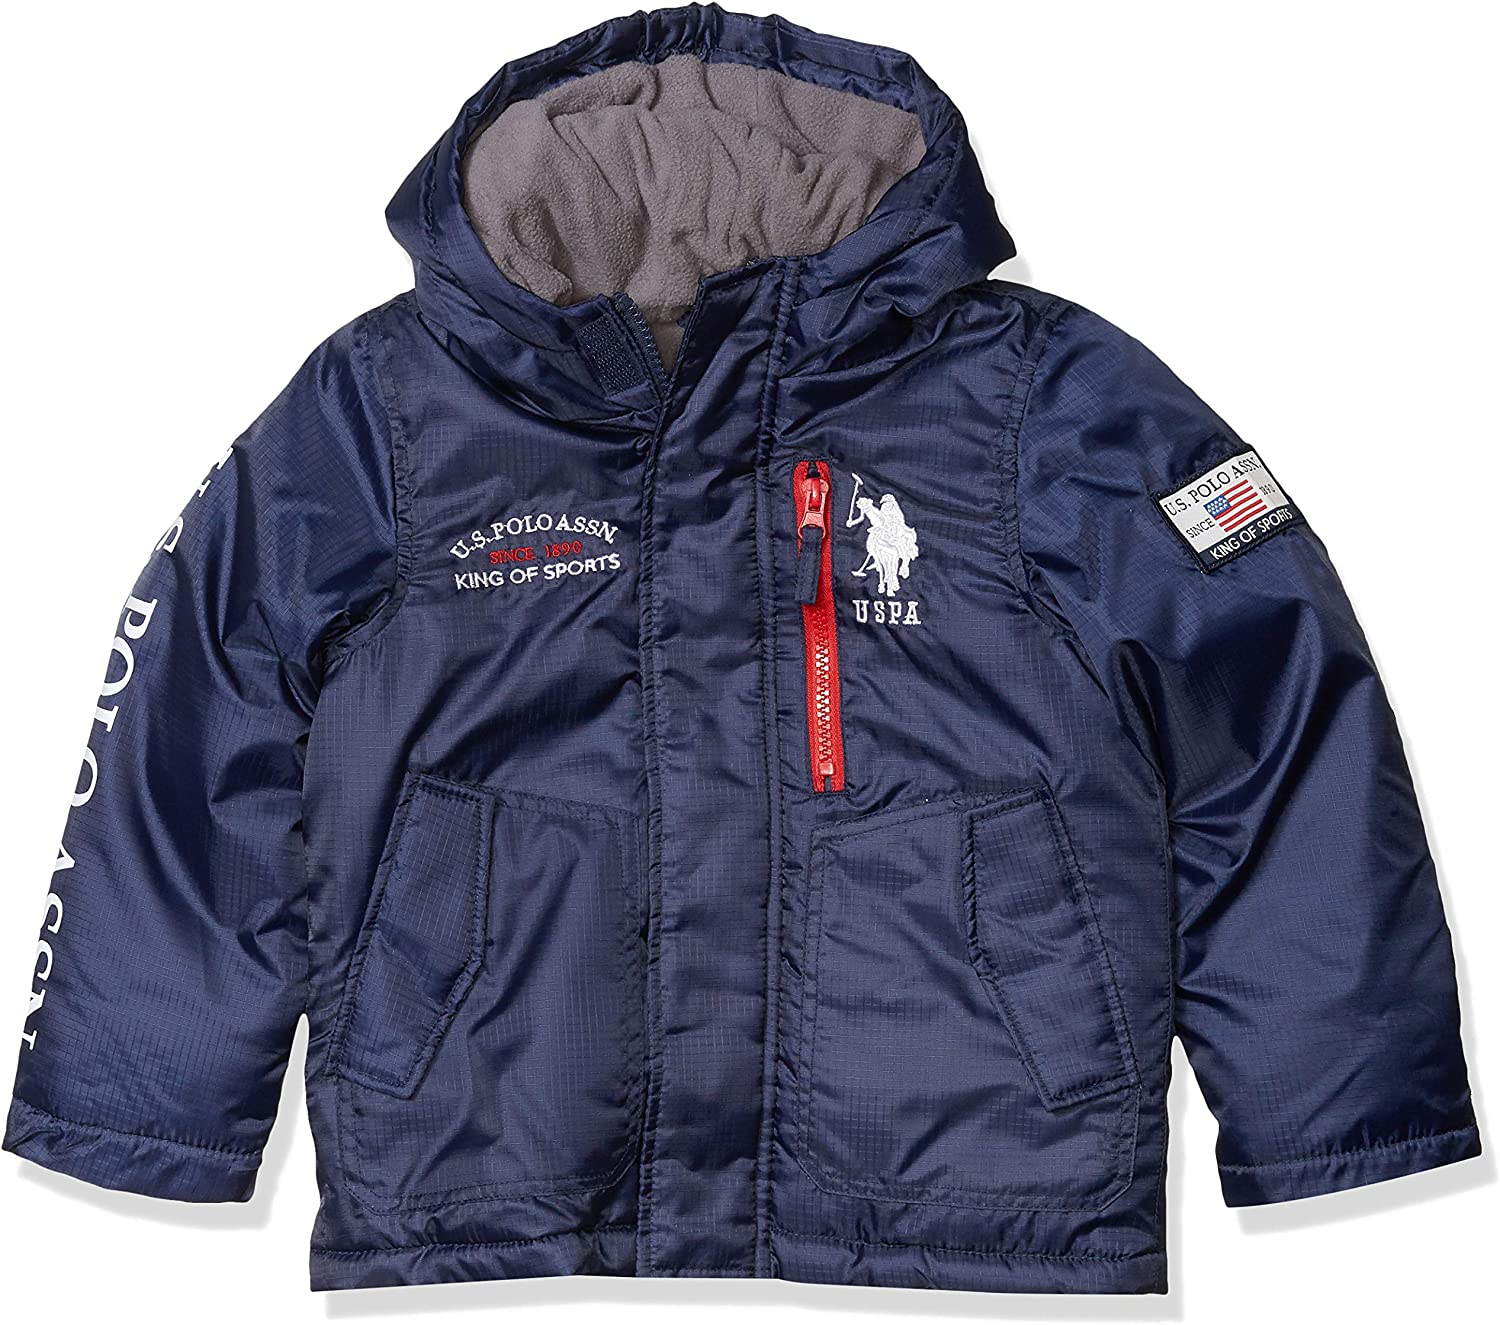 US Polo Association Toddler Boys Fashion Outerwear Jacket UB43-Vest-Classic Navy 4T